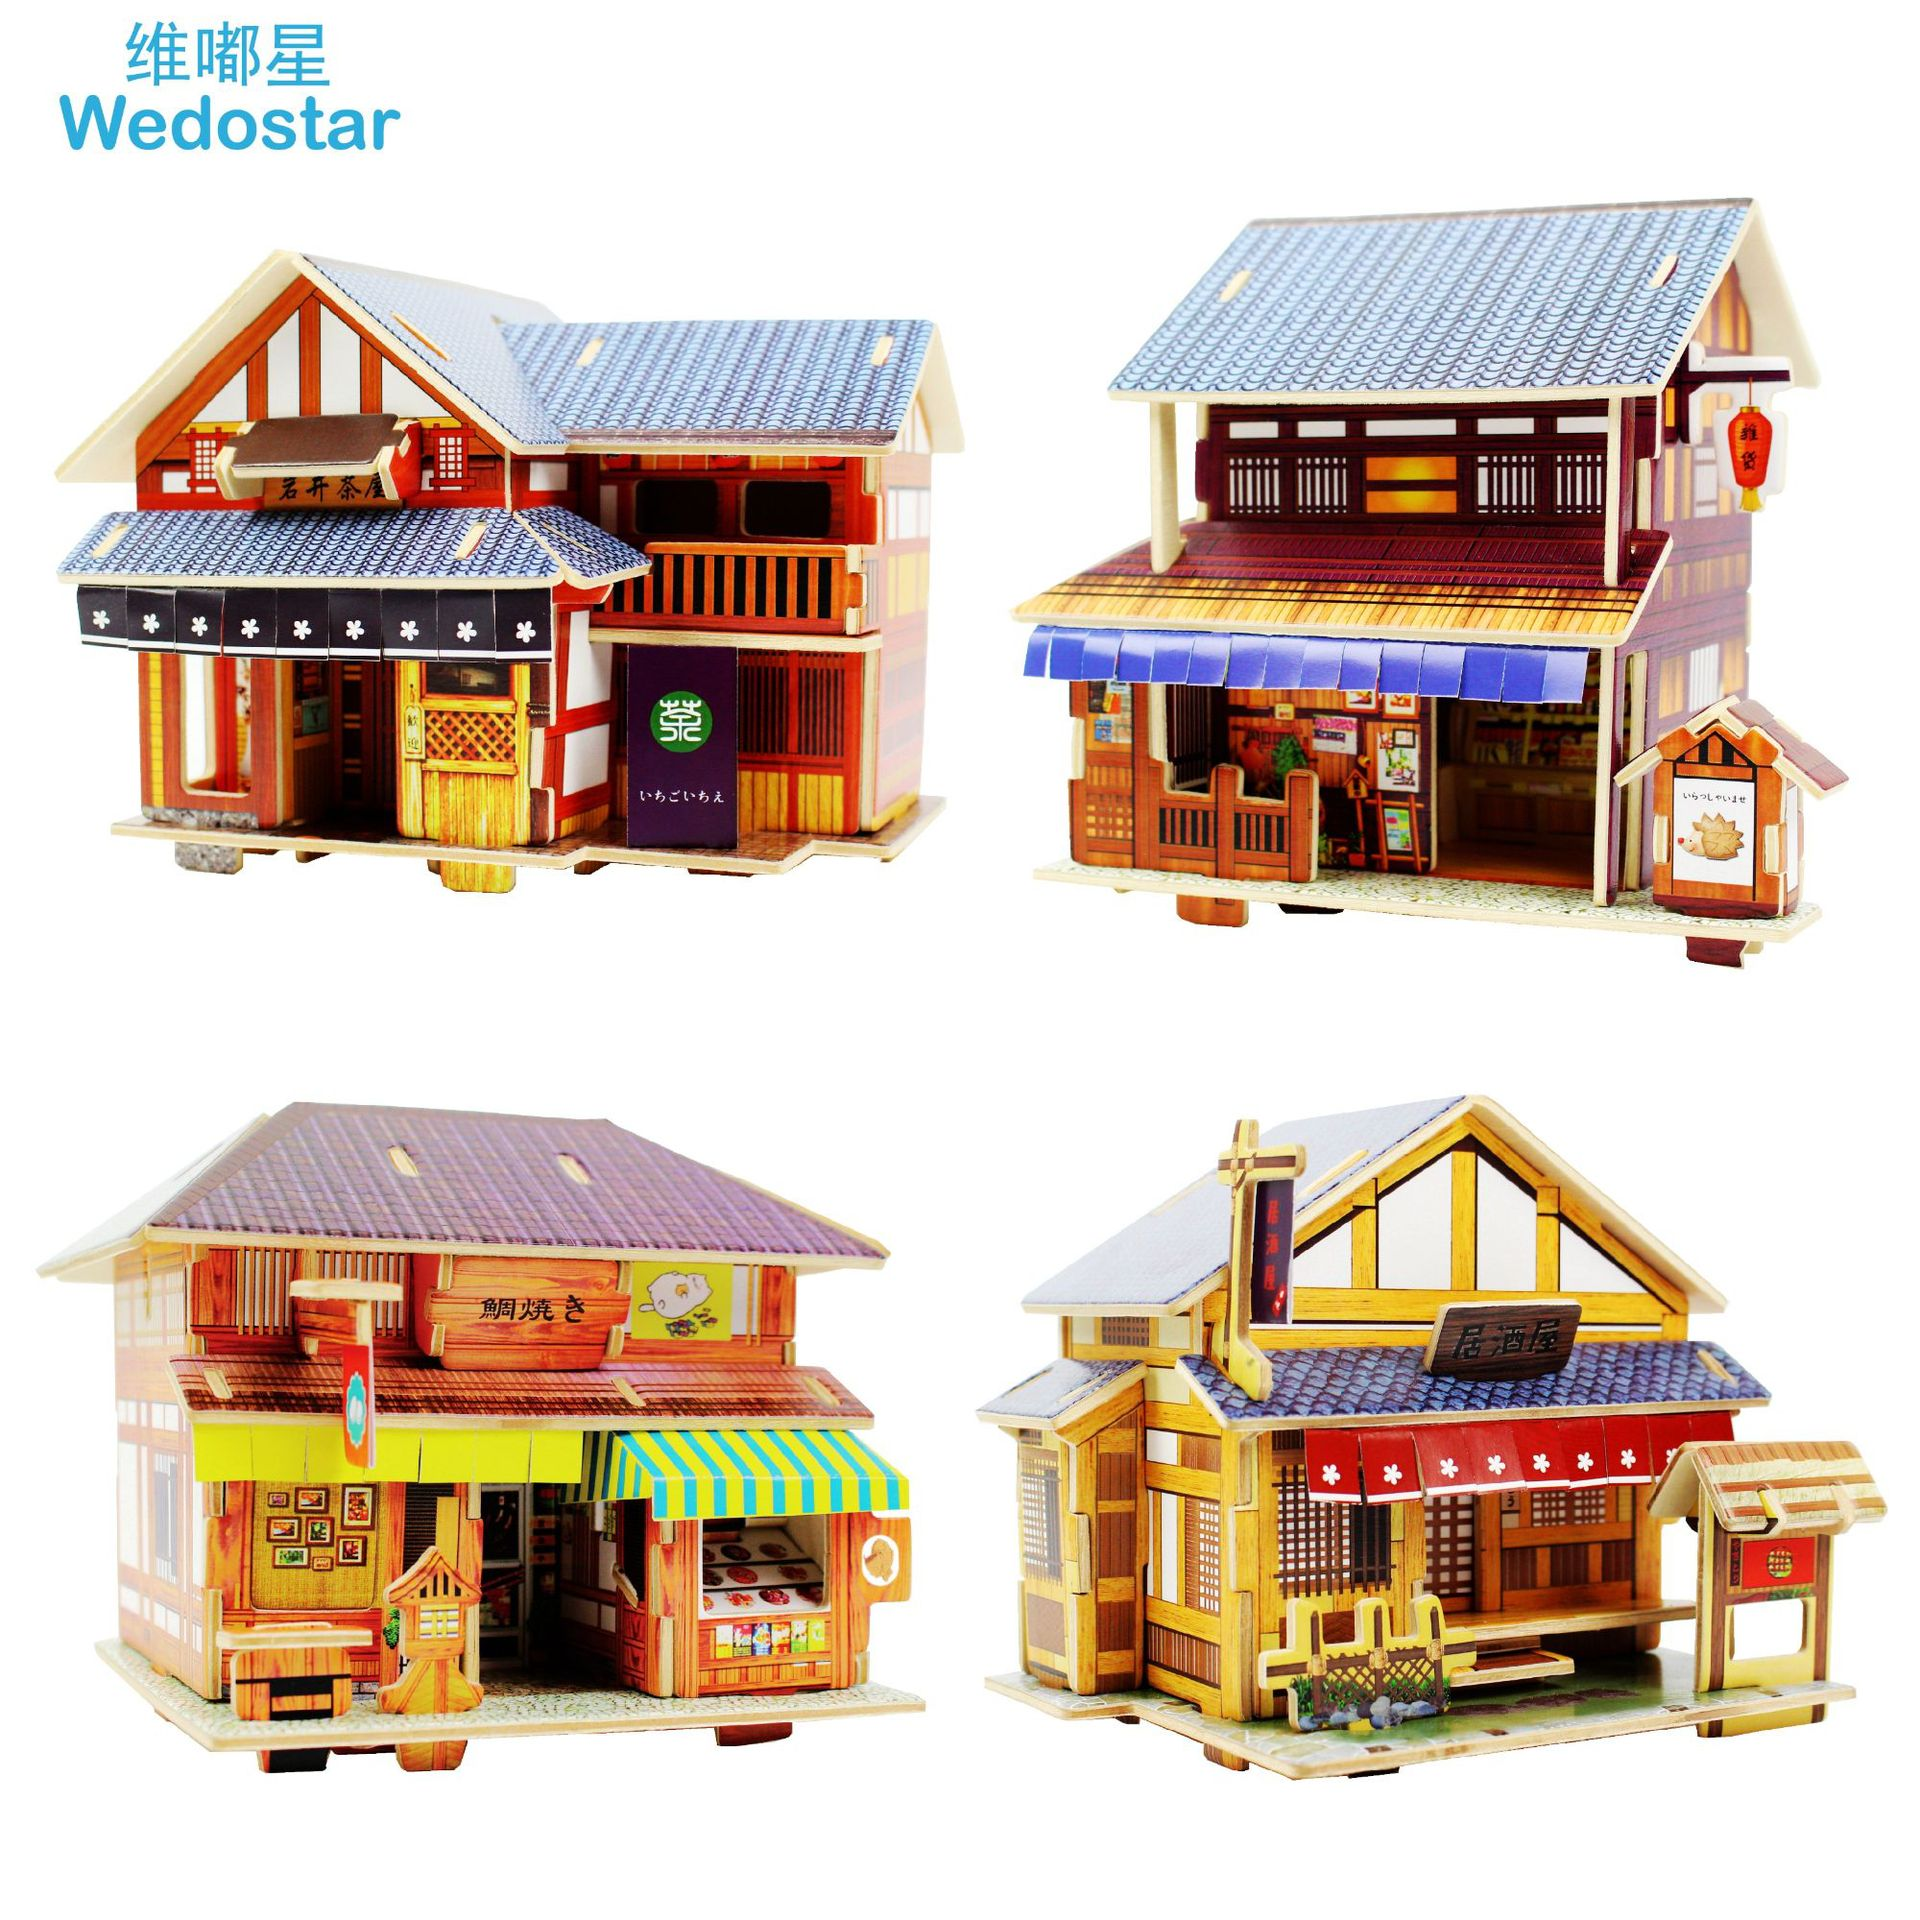 Wooden 3D Puzzle Jigsaw Puzzle House Children's Puzzle DIY Cabin 3D Puzzle Educational Toys